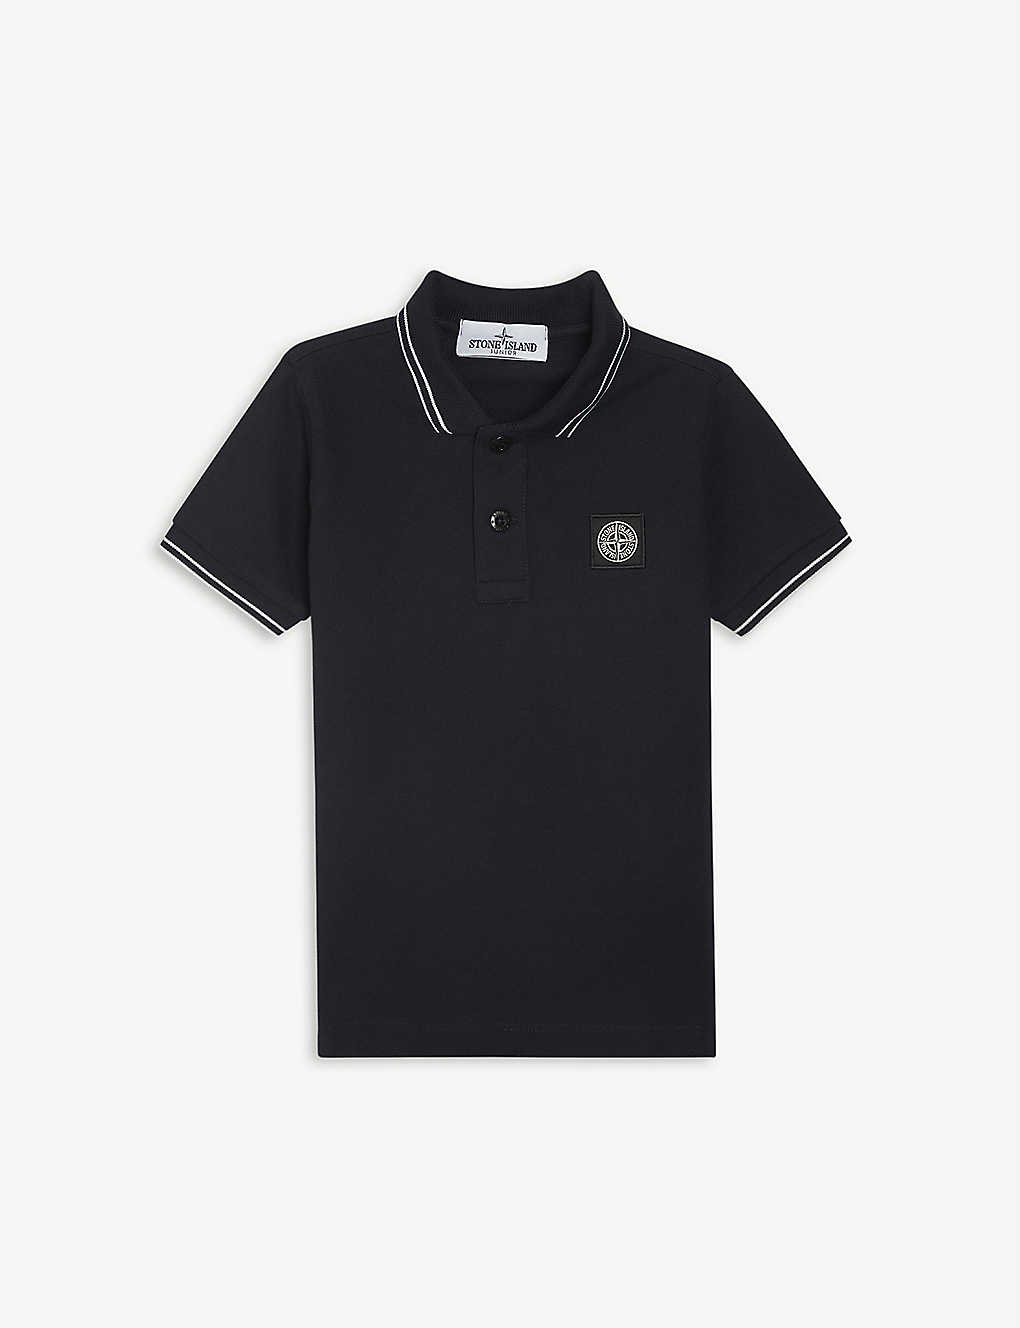 STONE ISLAND: Compass logo-patch cotton-jersey polo shirt 4-14 years